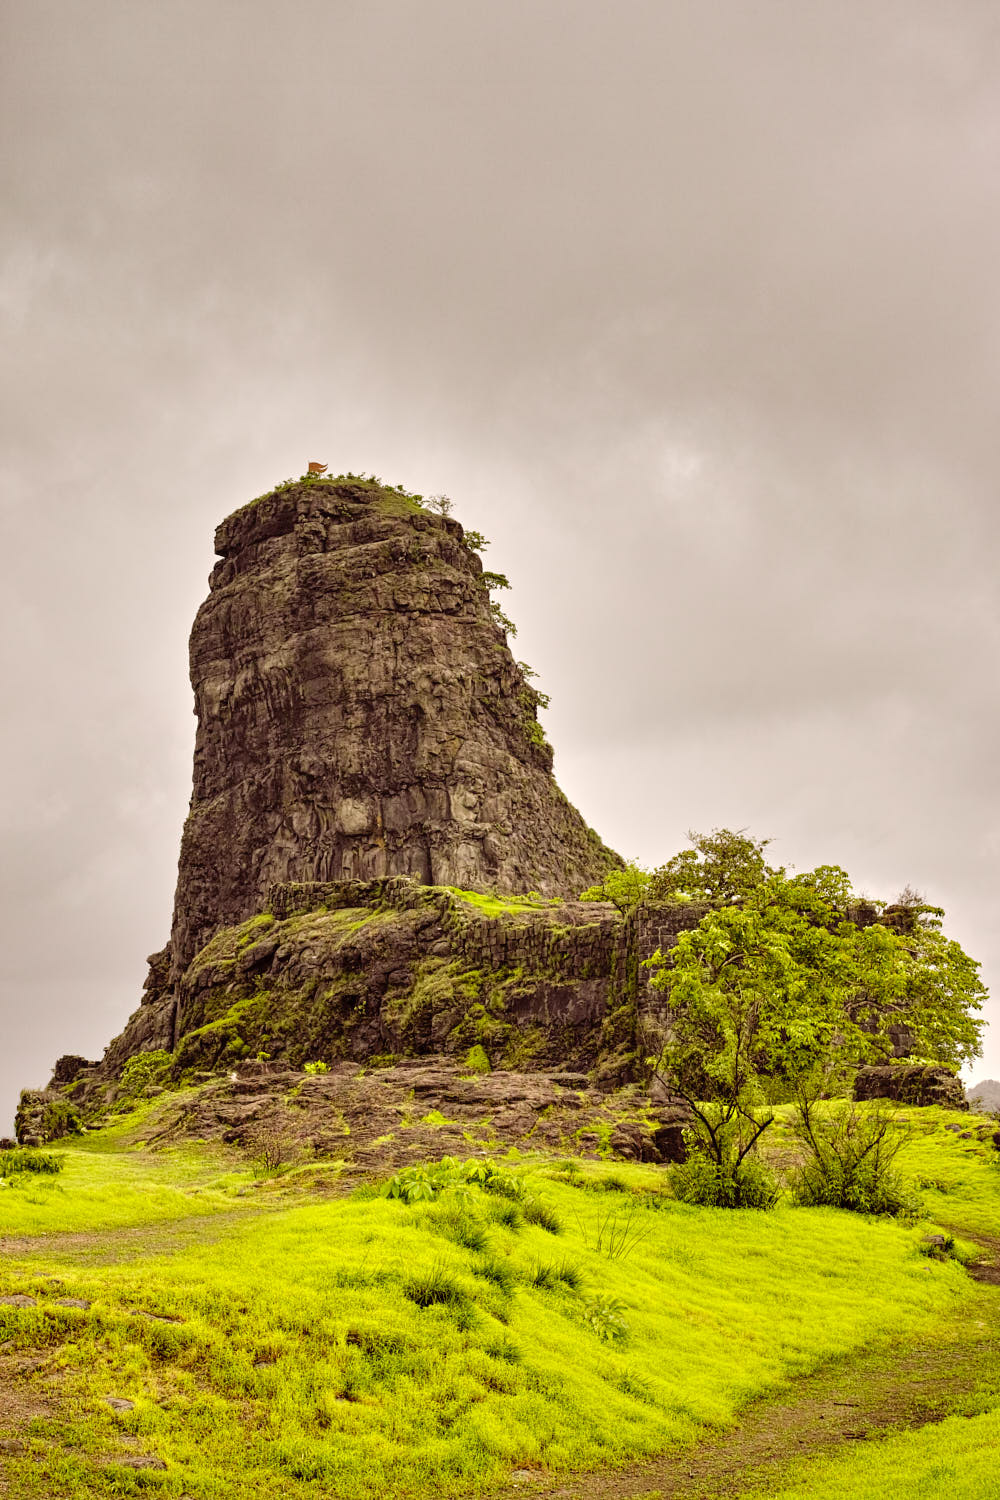 Karnala tower resembles a person making a rude gesture with his finger